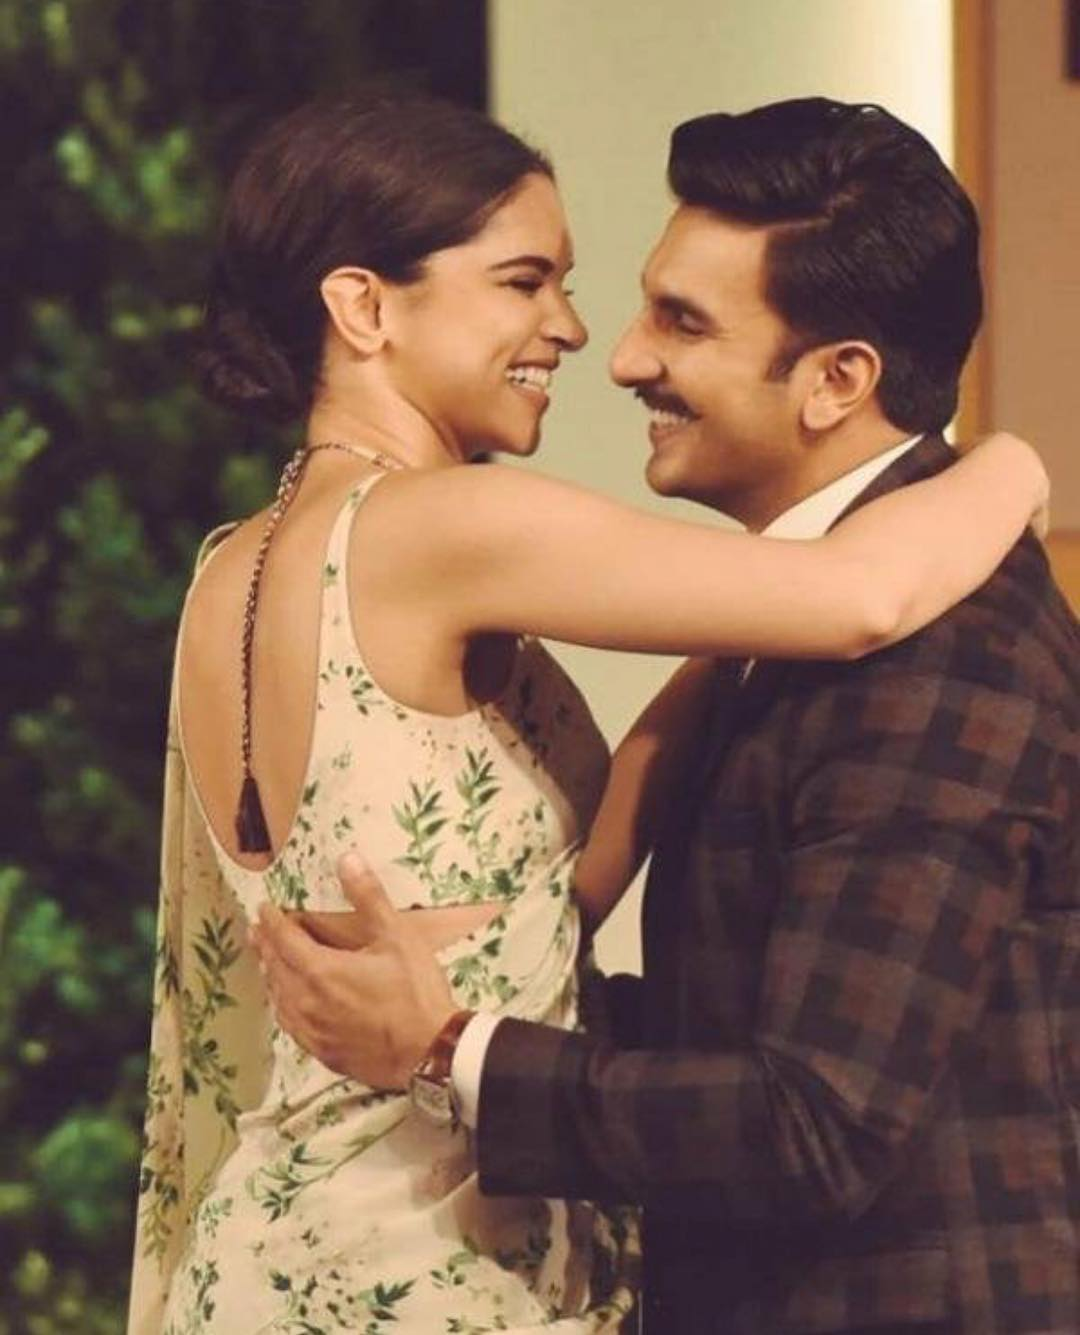 deepika-padukone-ranveer-singh-announce-wedding-dates